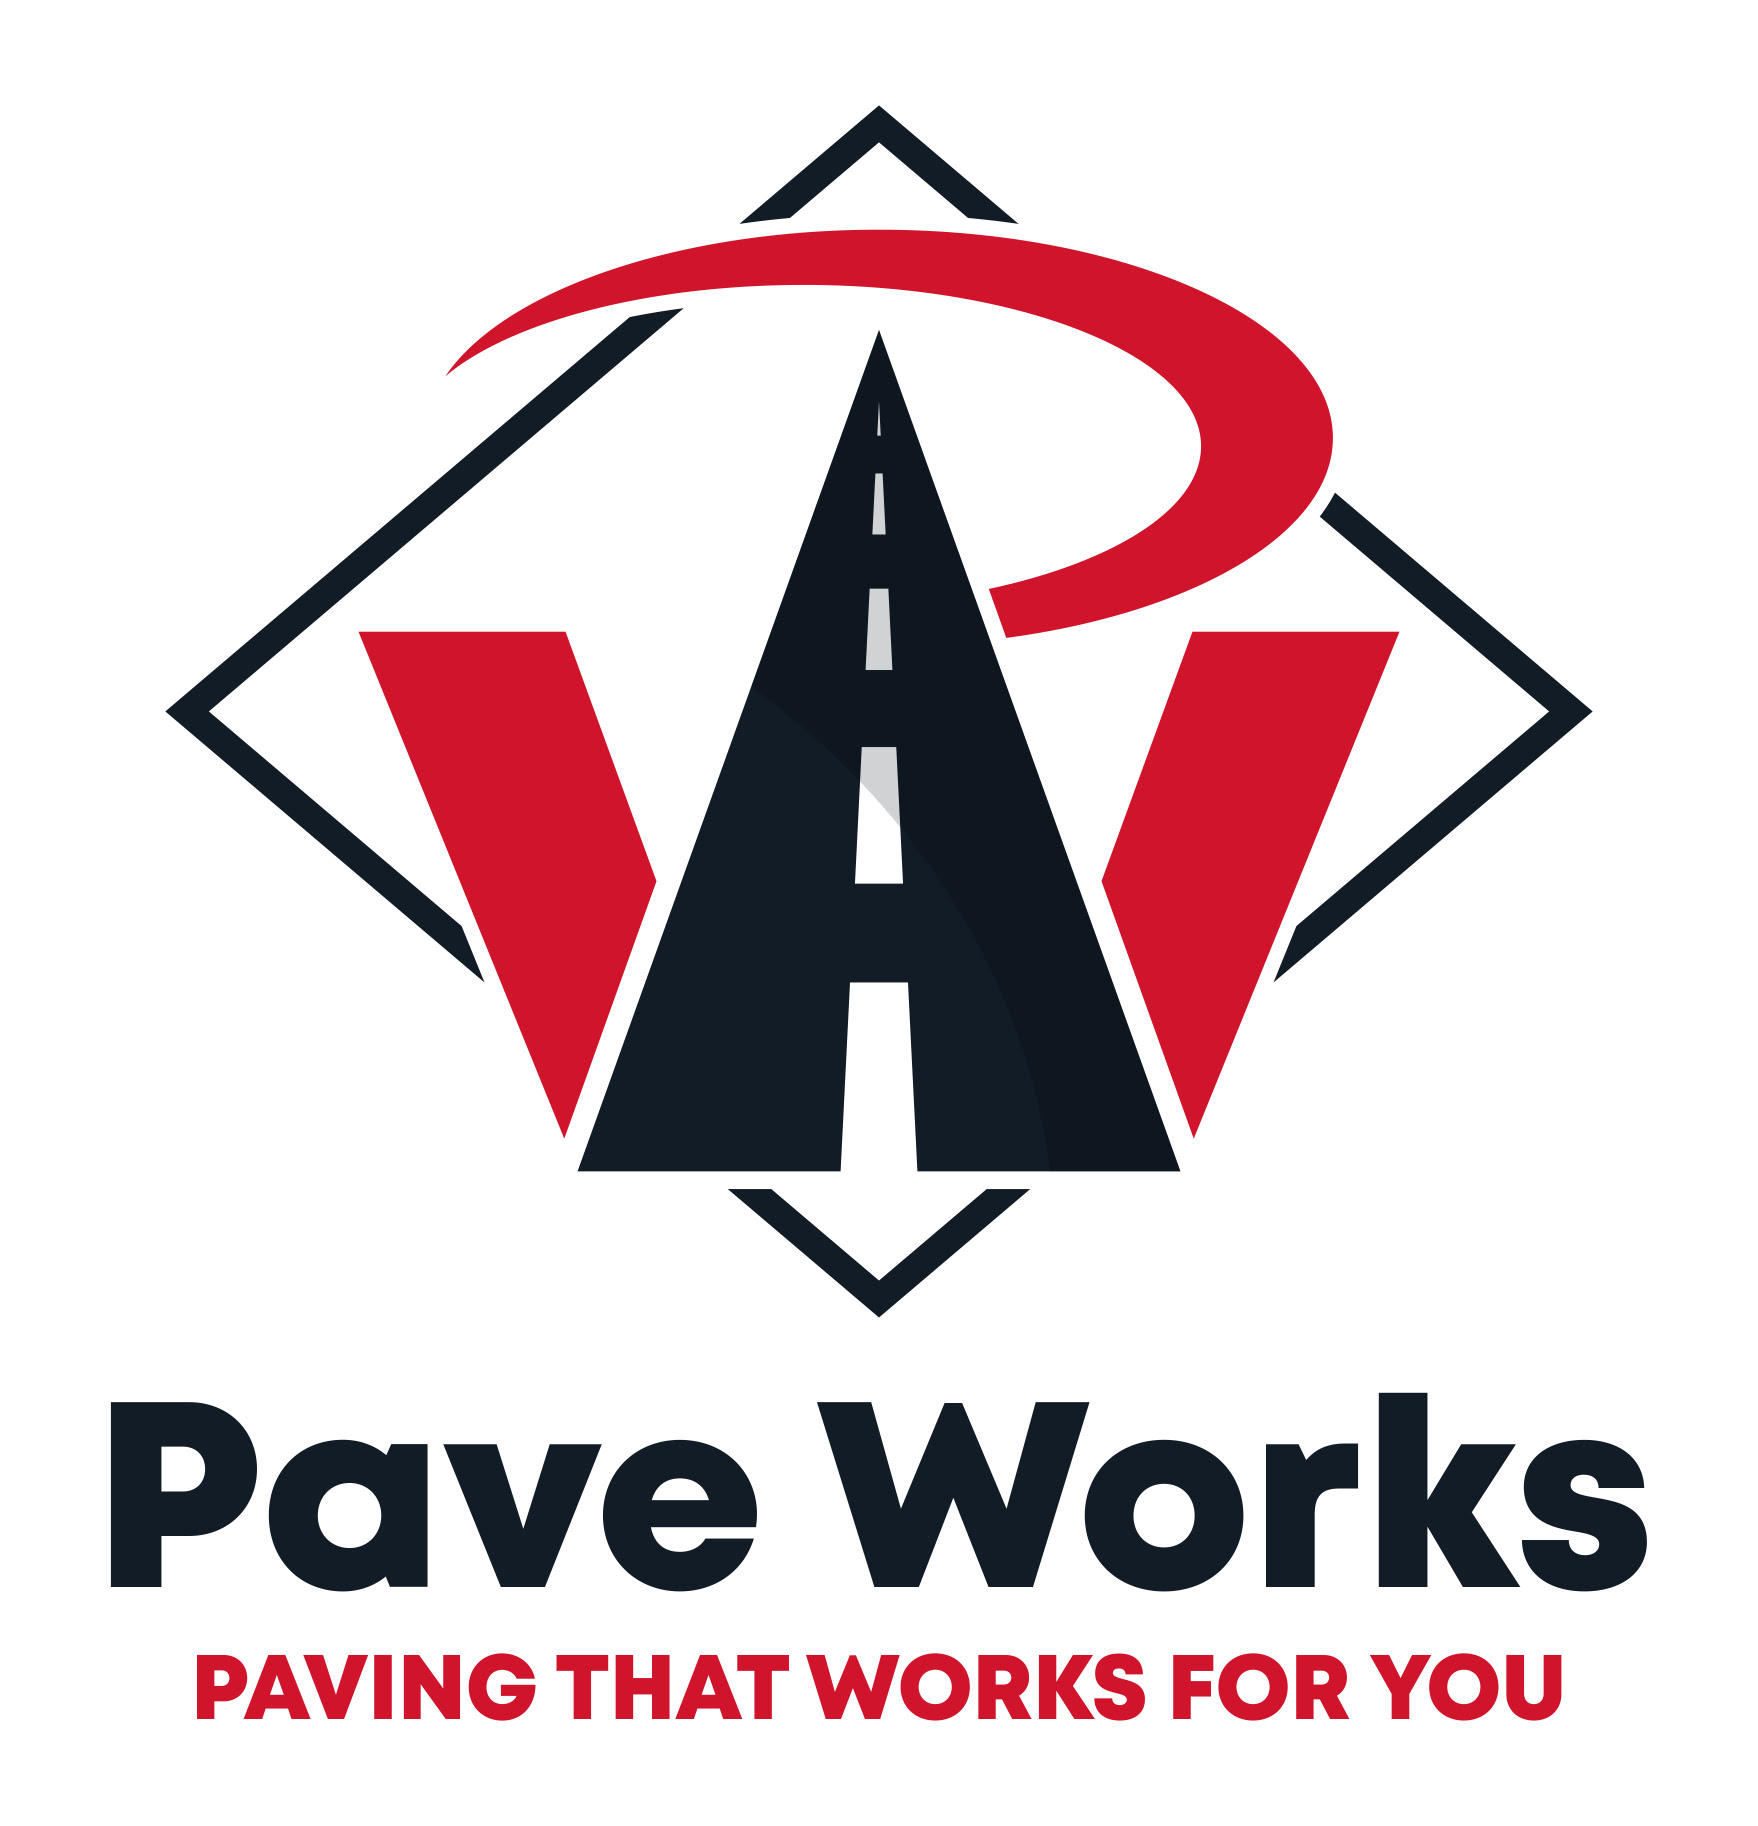 Pave Works logo with road